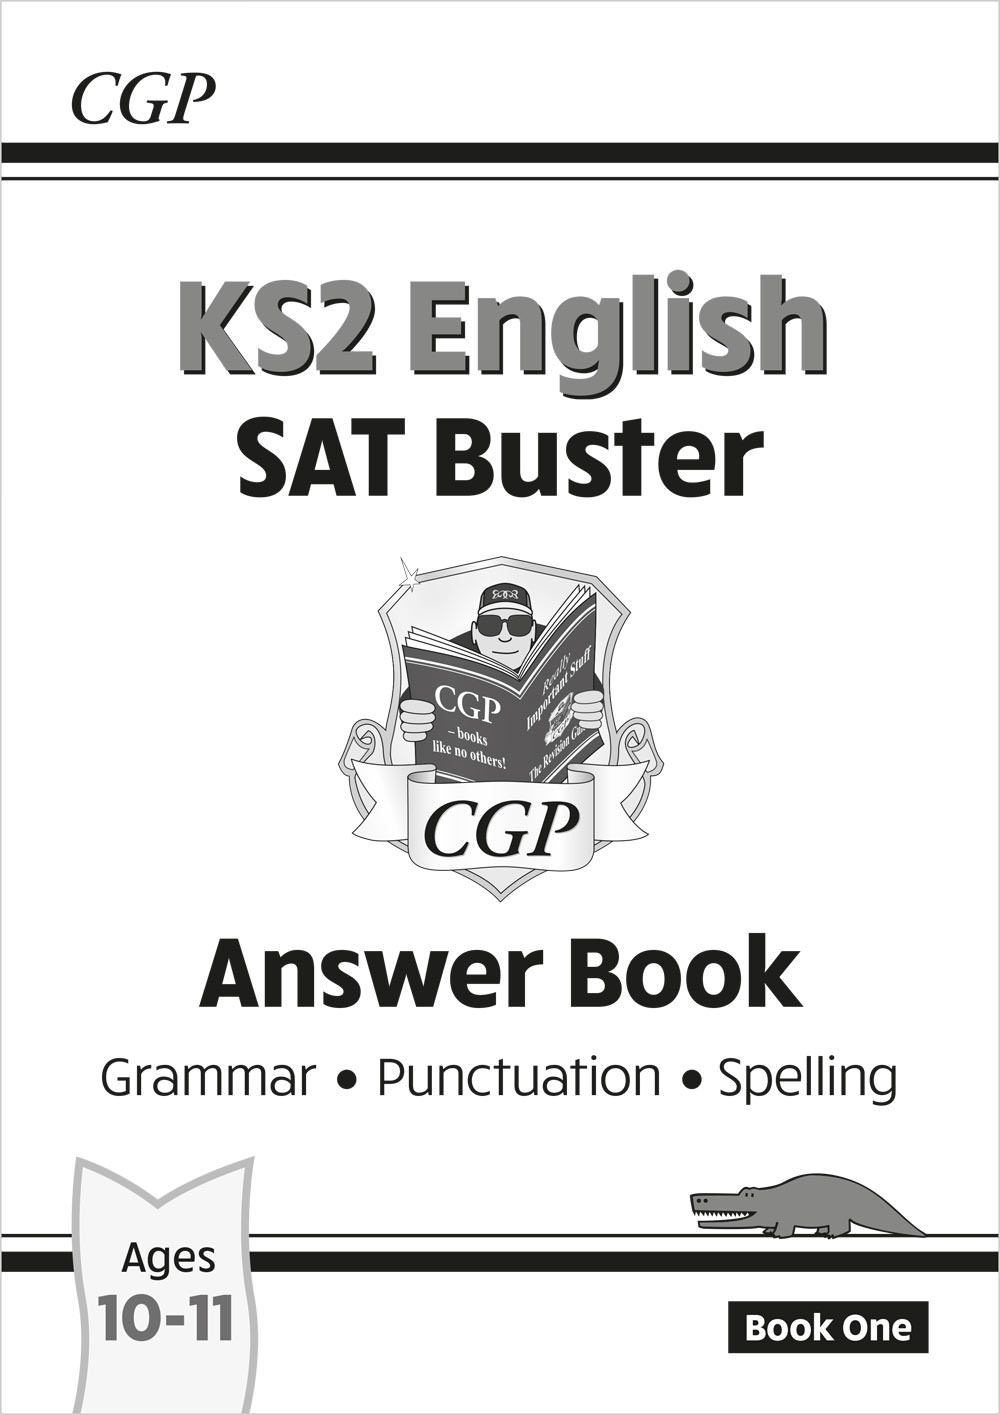 E6GA23 - New KS2 English SAT Buster: Grammar, Punctuation & Spelling - Answer Book 1 (for the 2021 t